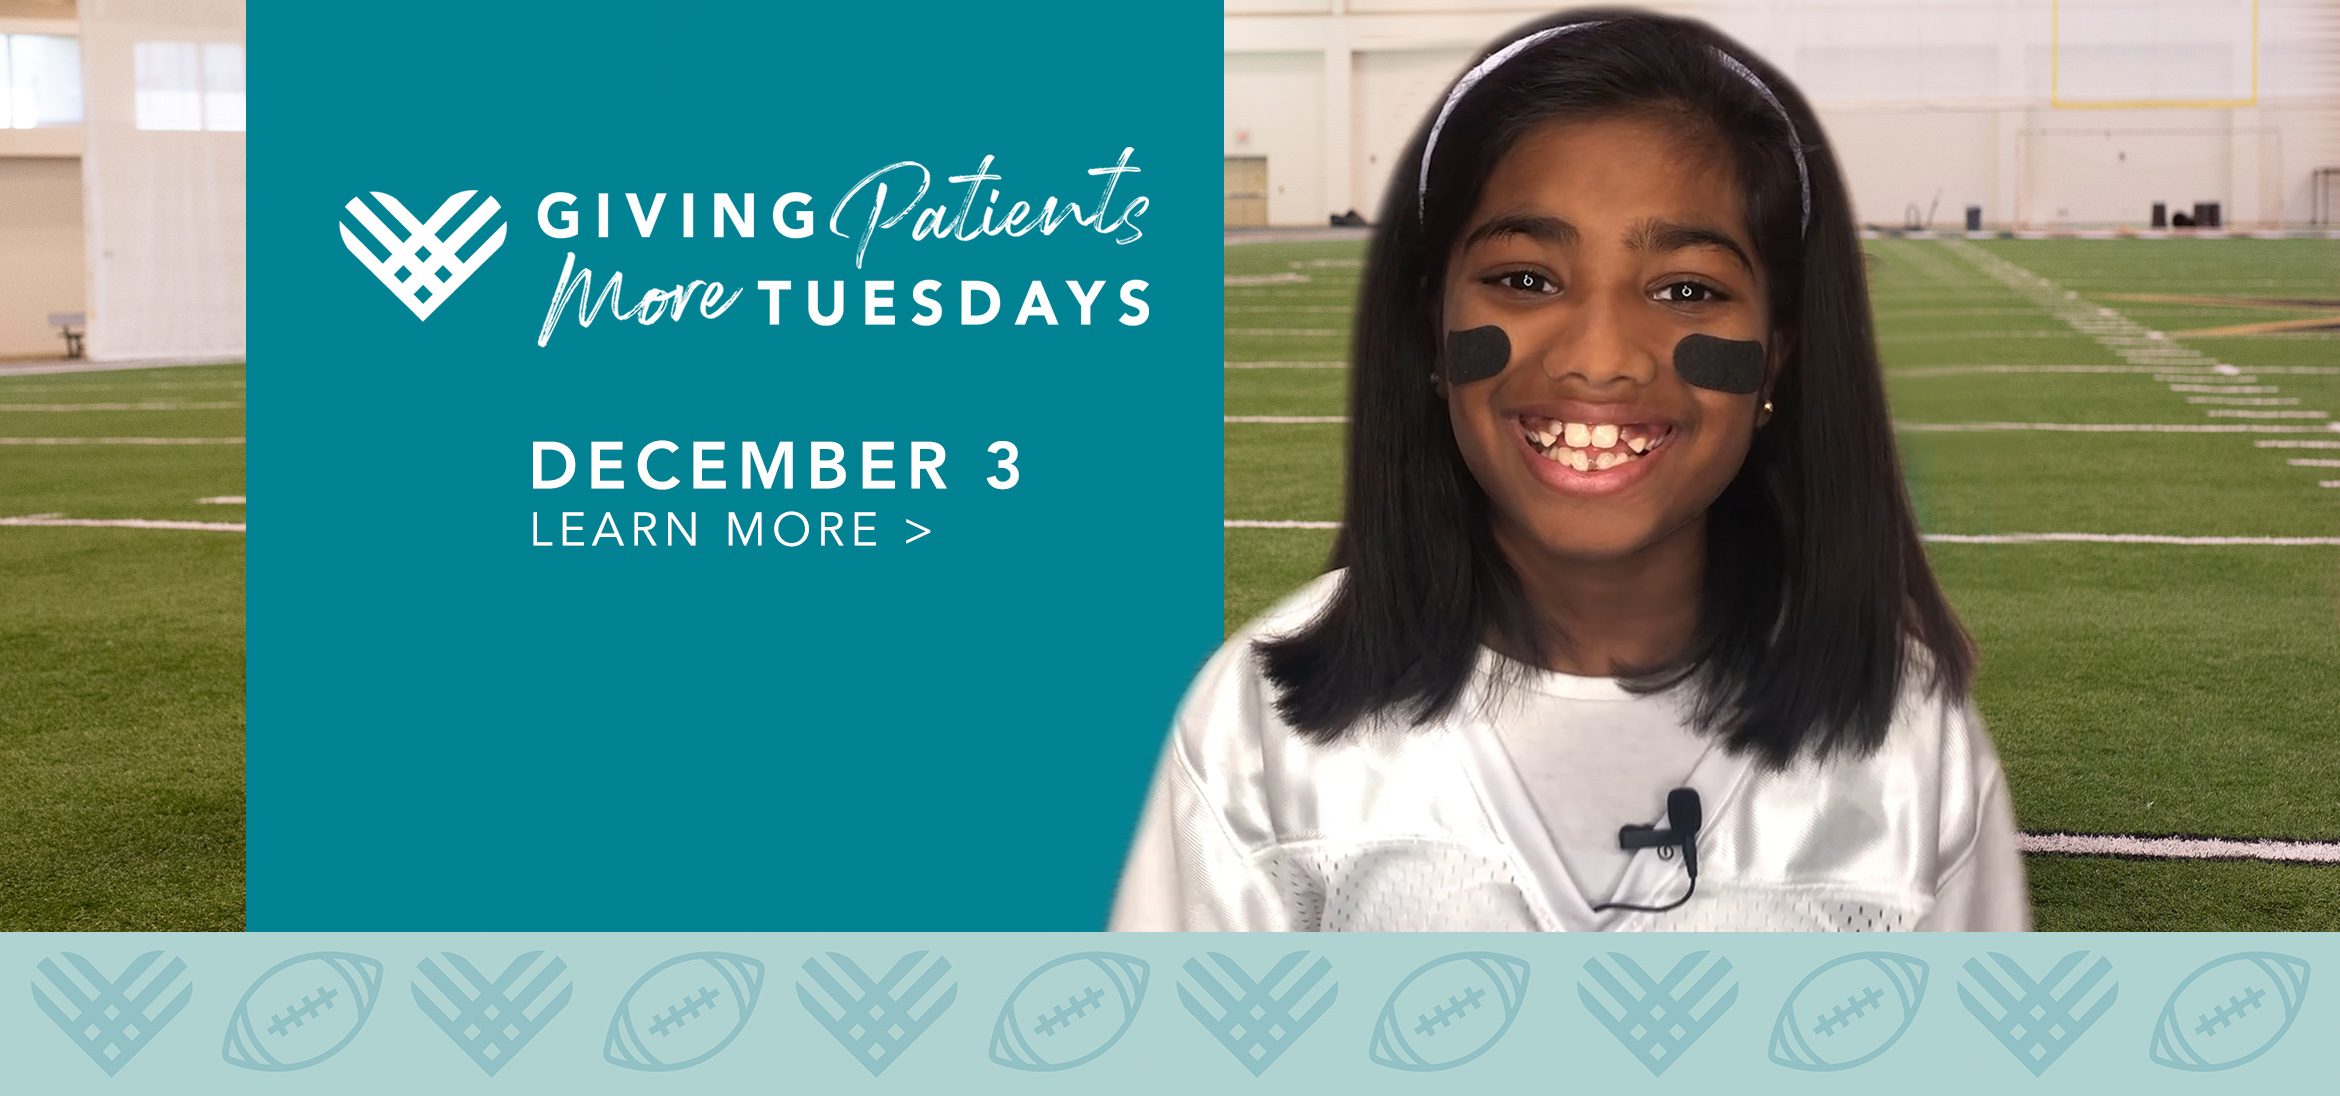 Giving Tuesday is December 3, click to learn more